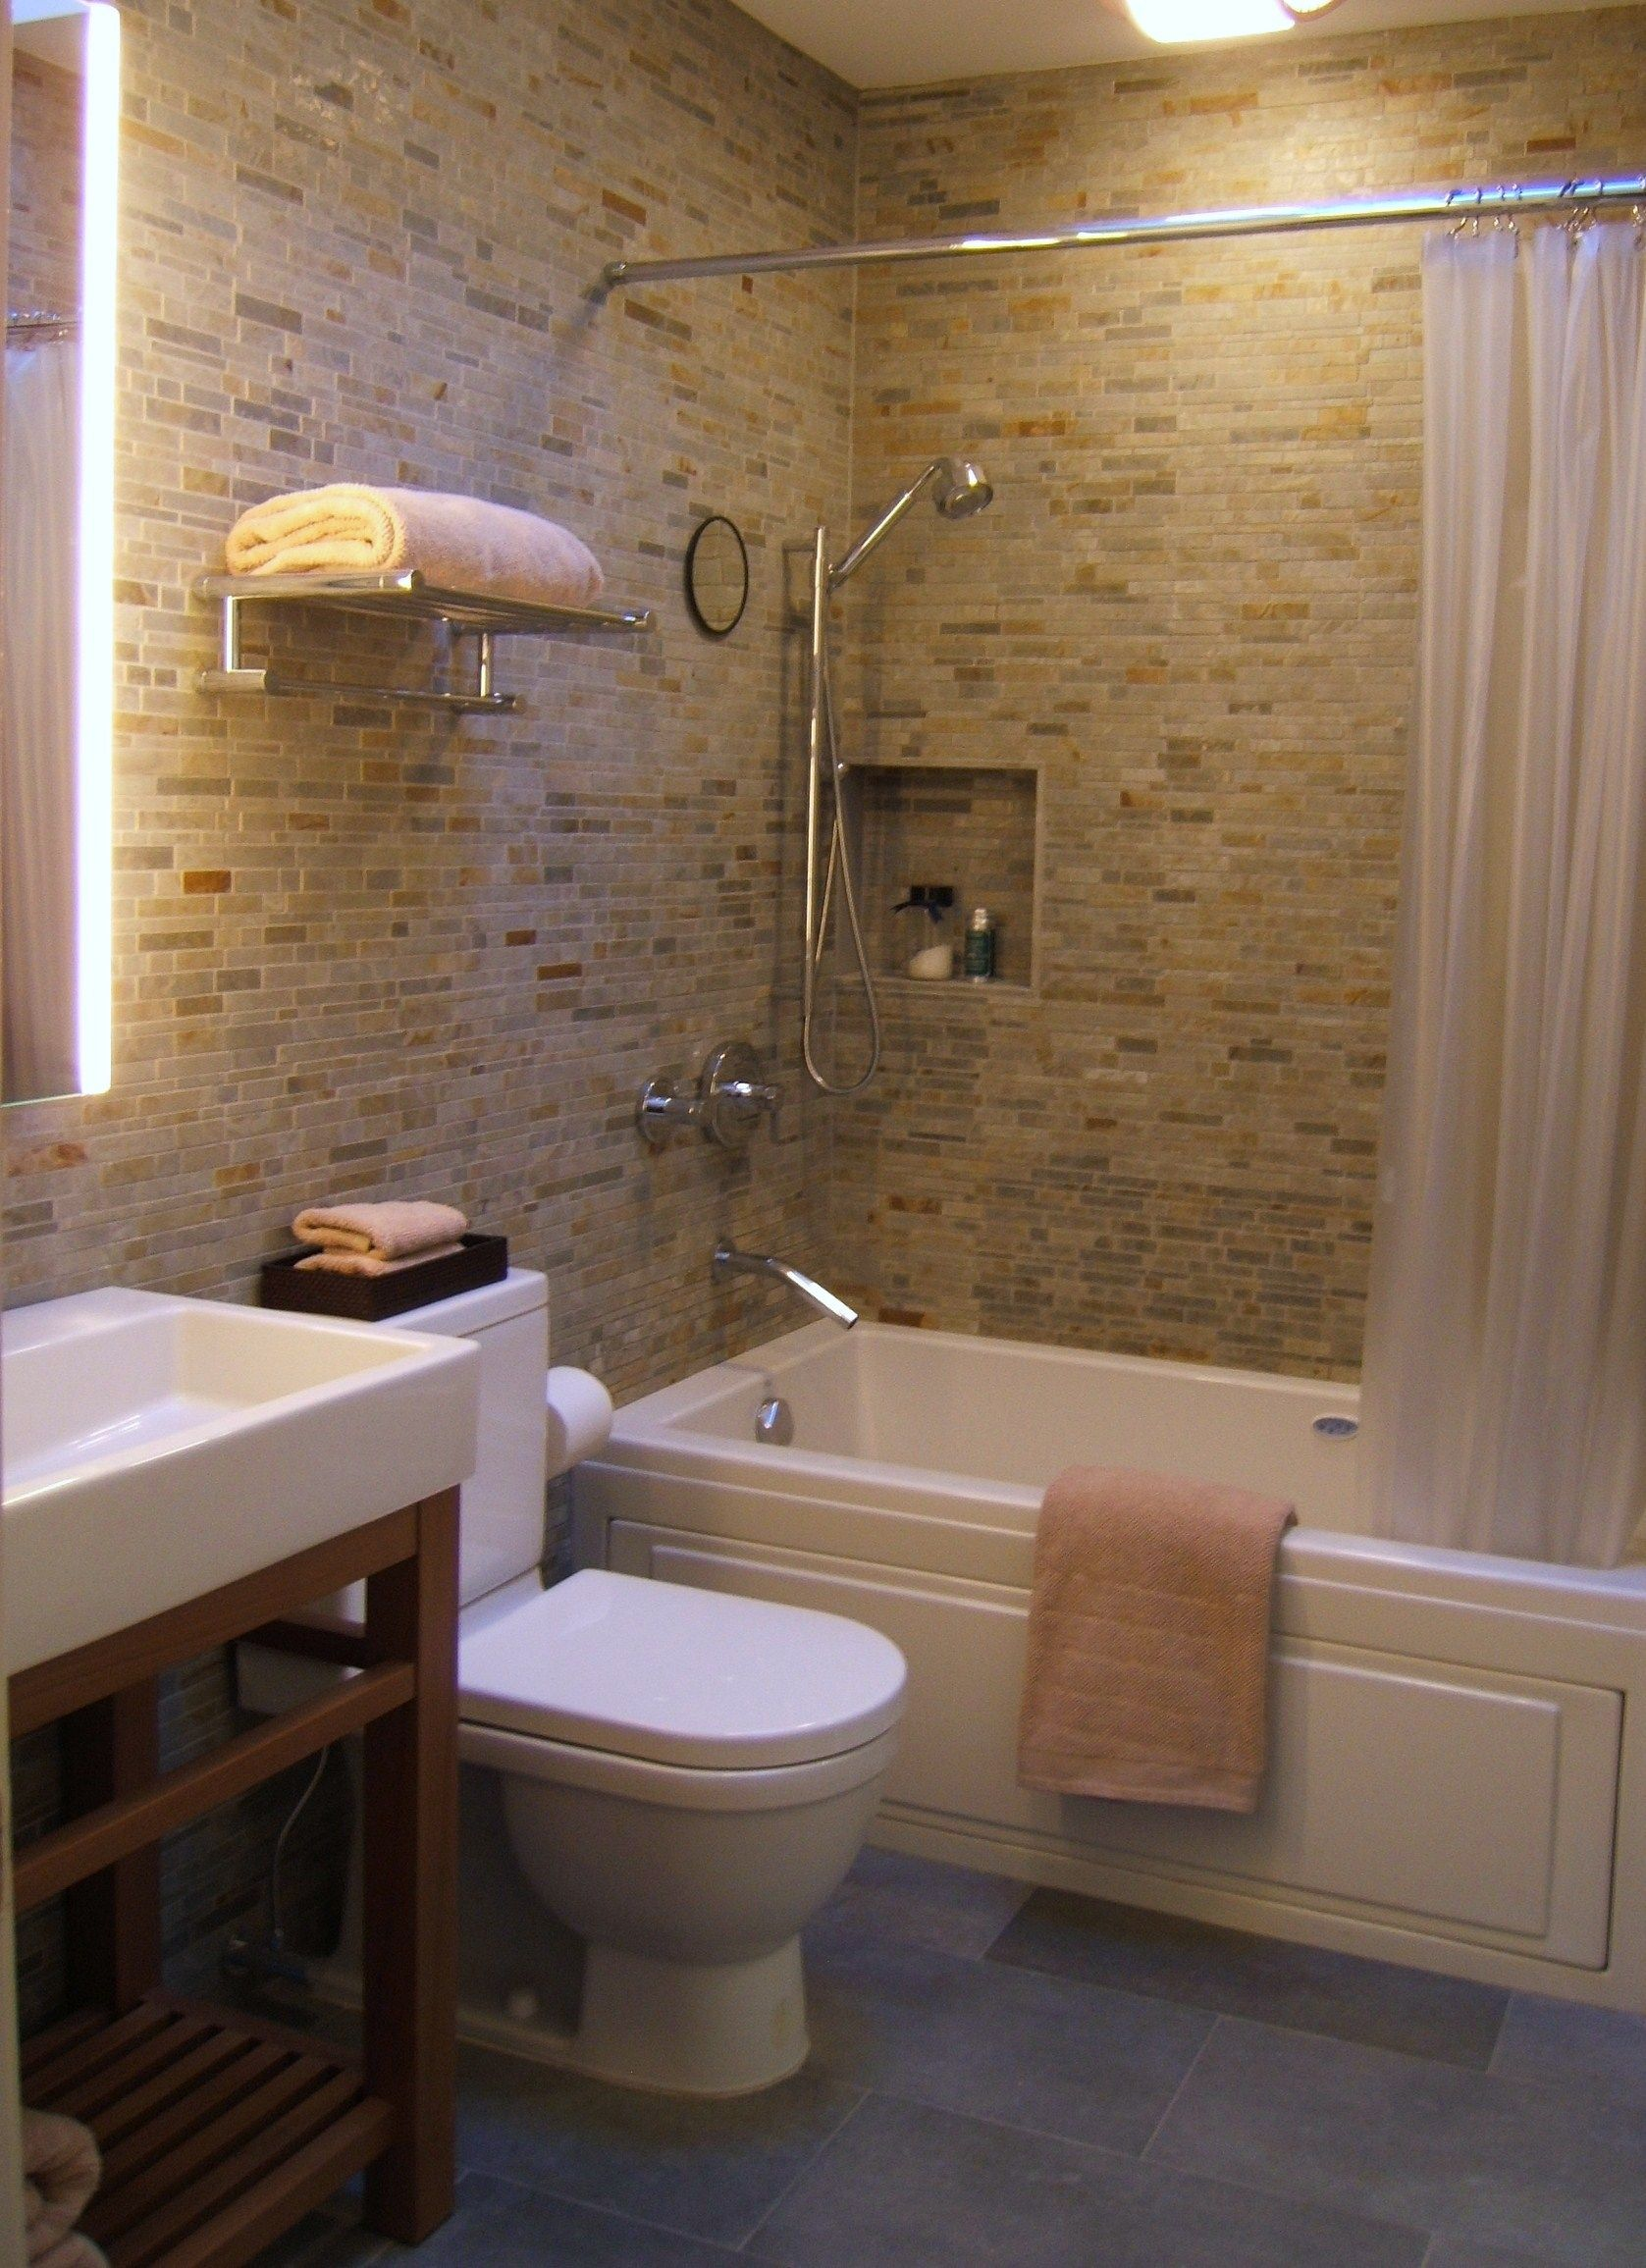 Small Bathroom Designs Youtube small bathroom designs south africa | small bath | pinterest